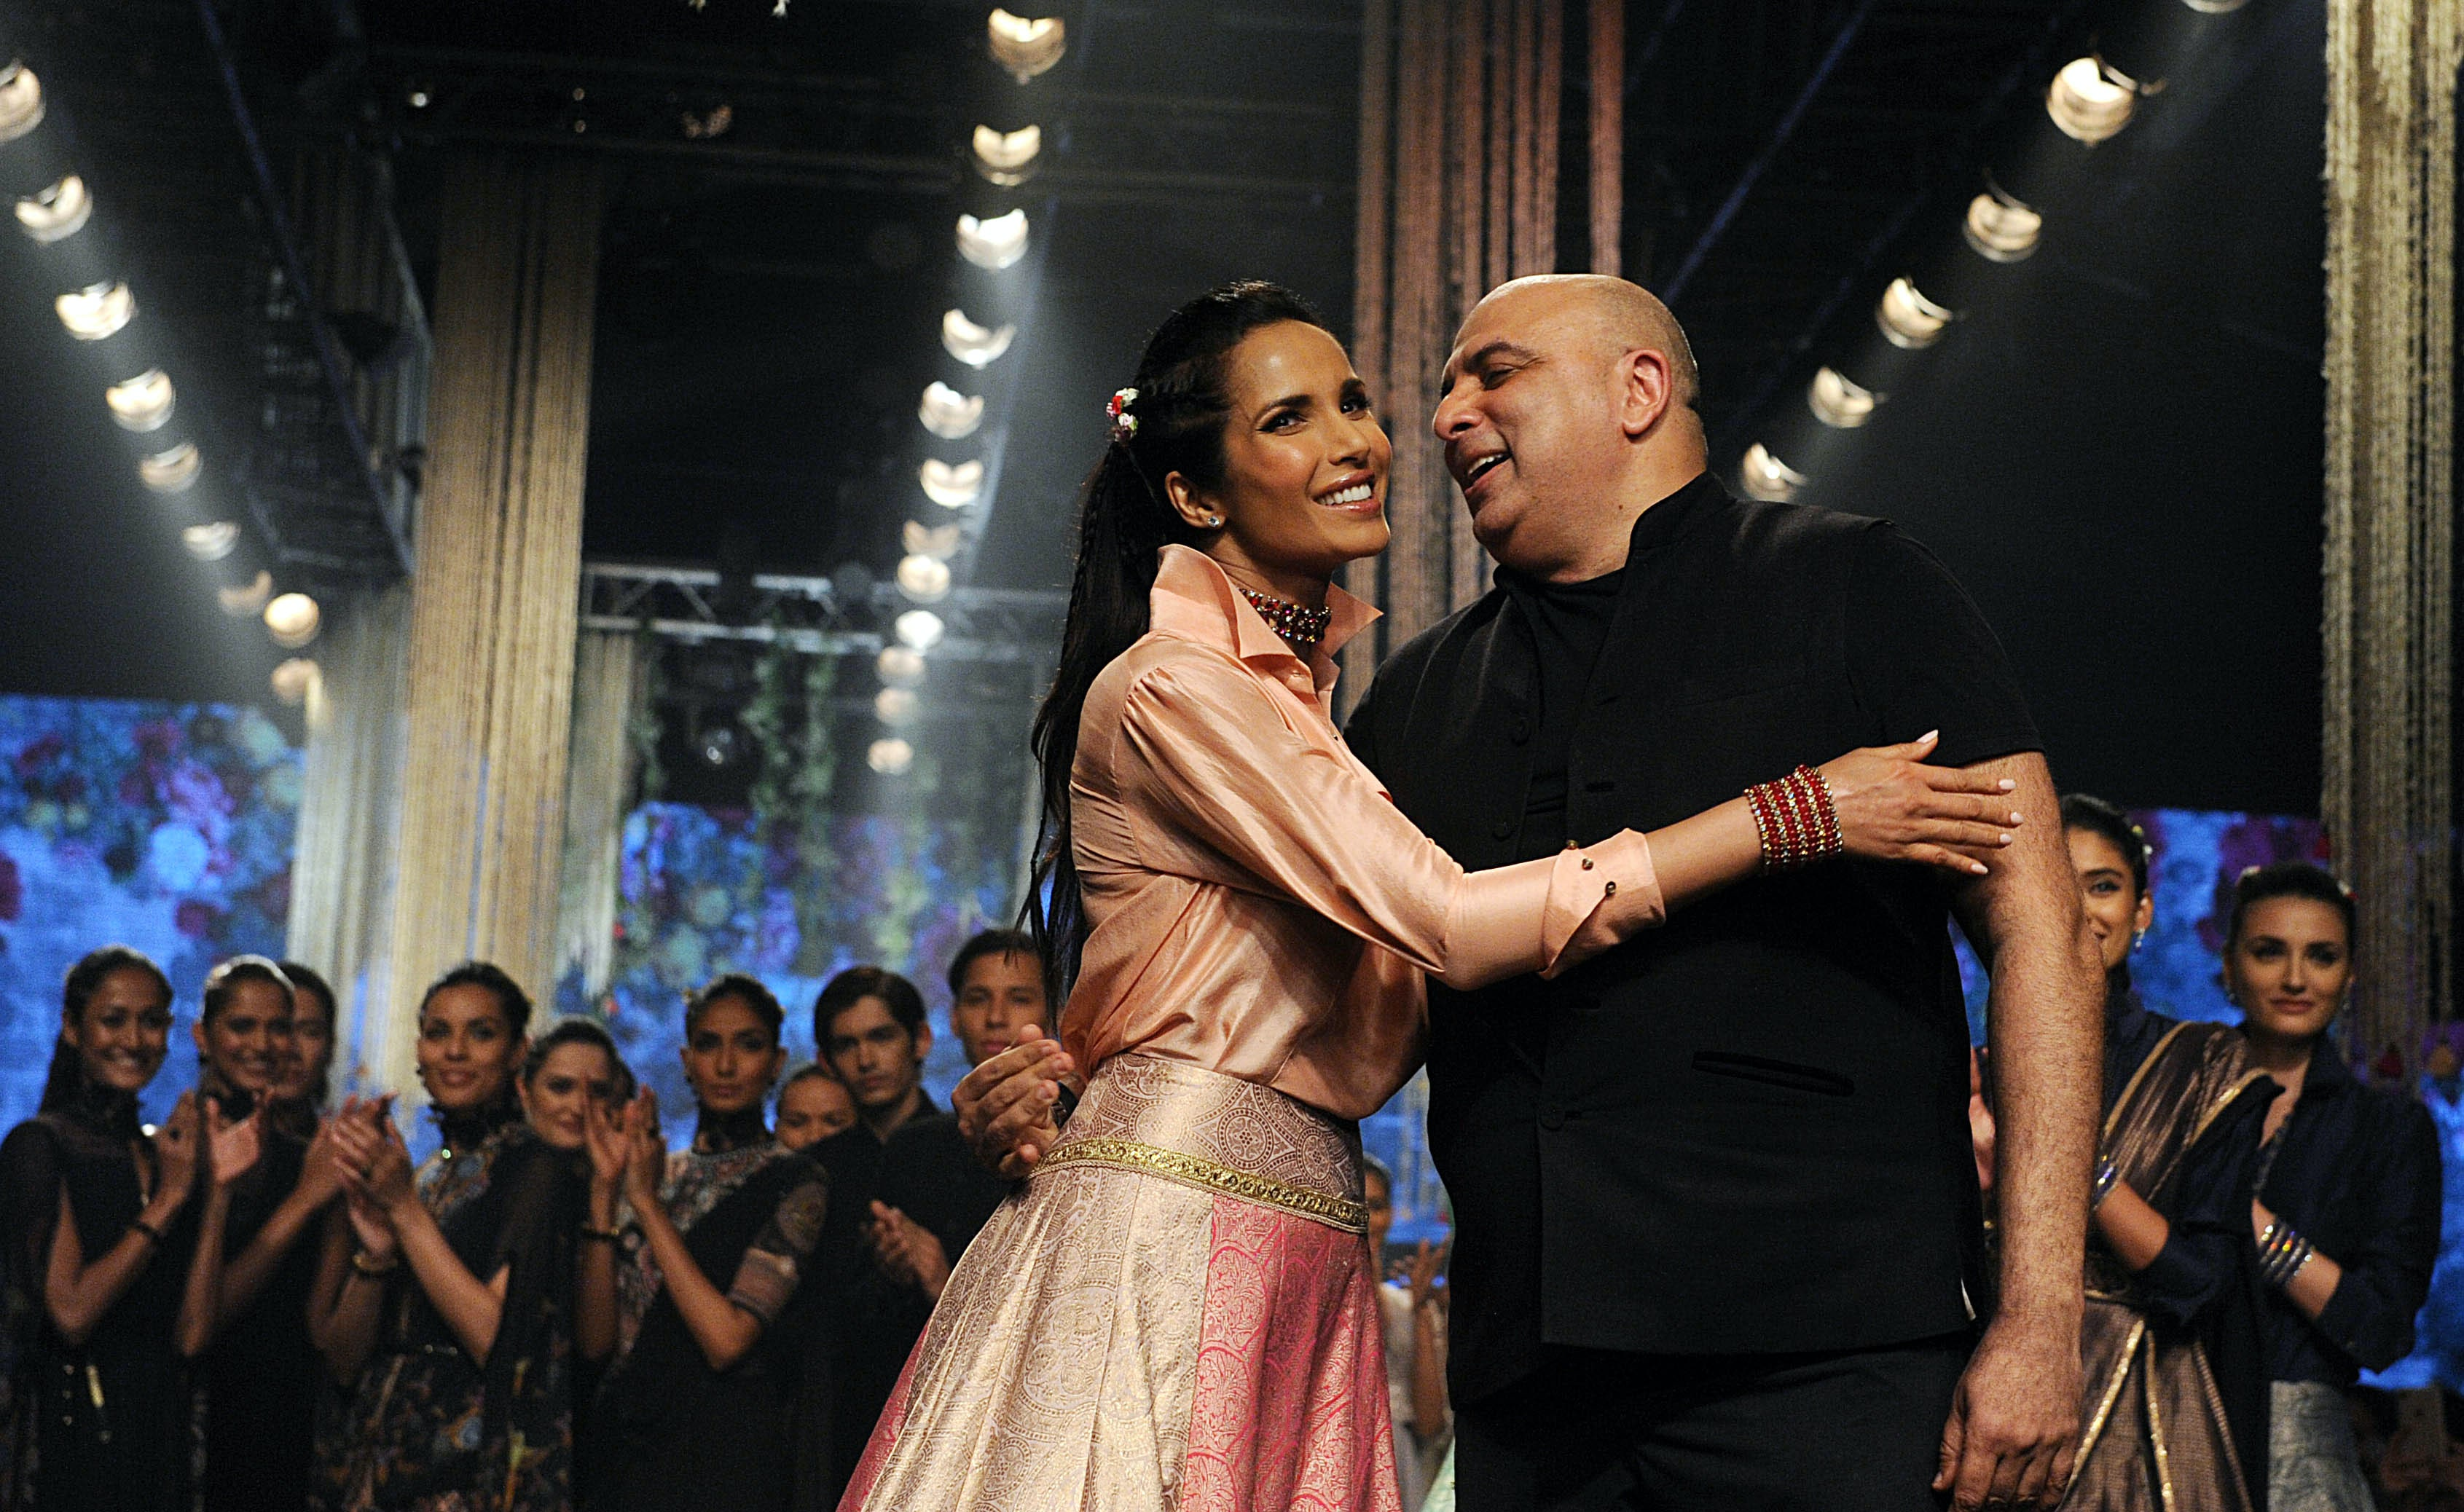 Padma Lakshmi with designer Tarun Tahiliani at Lakme Fashion Week | Source: Getty Images